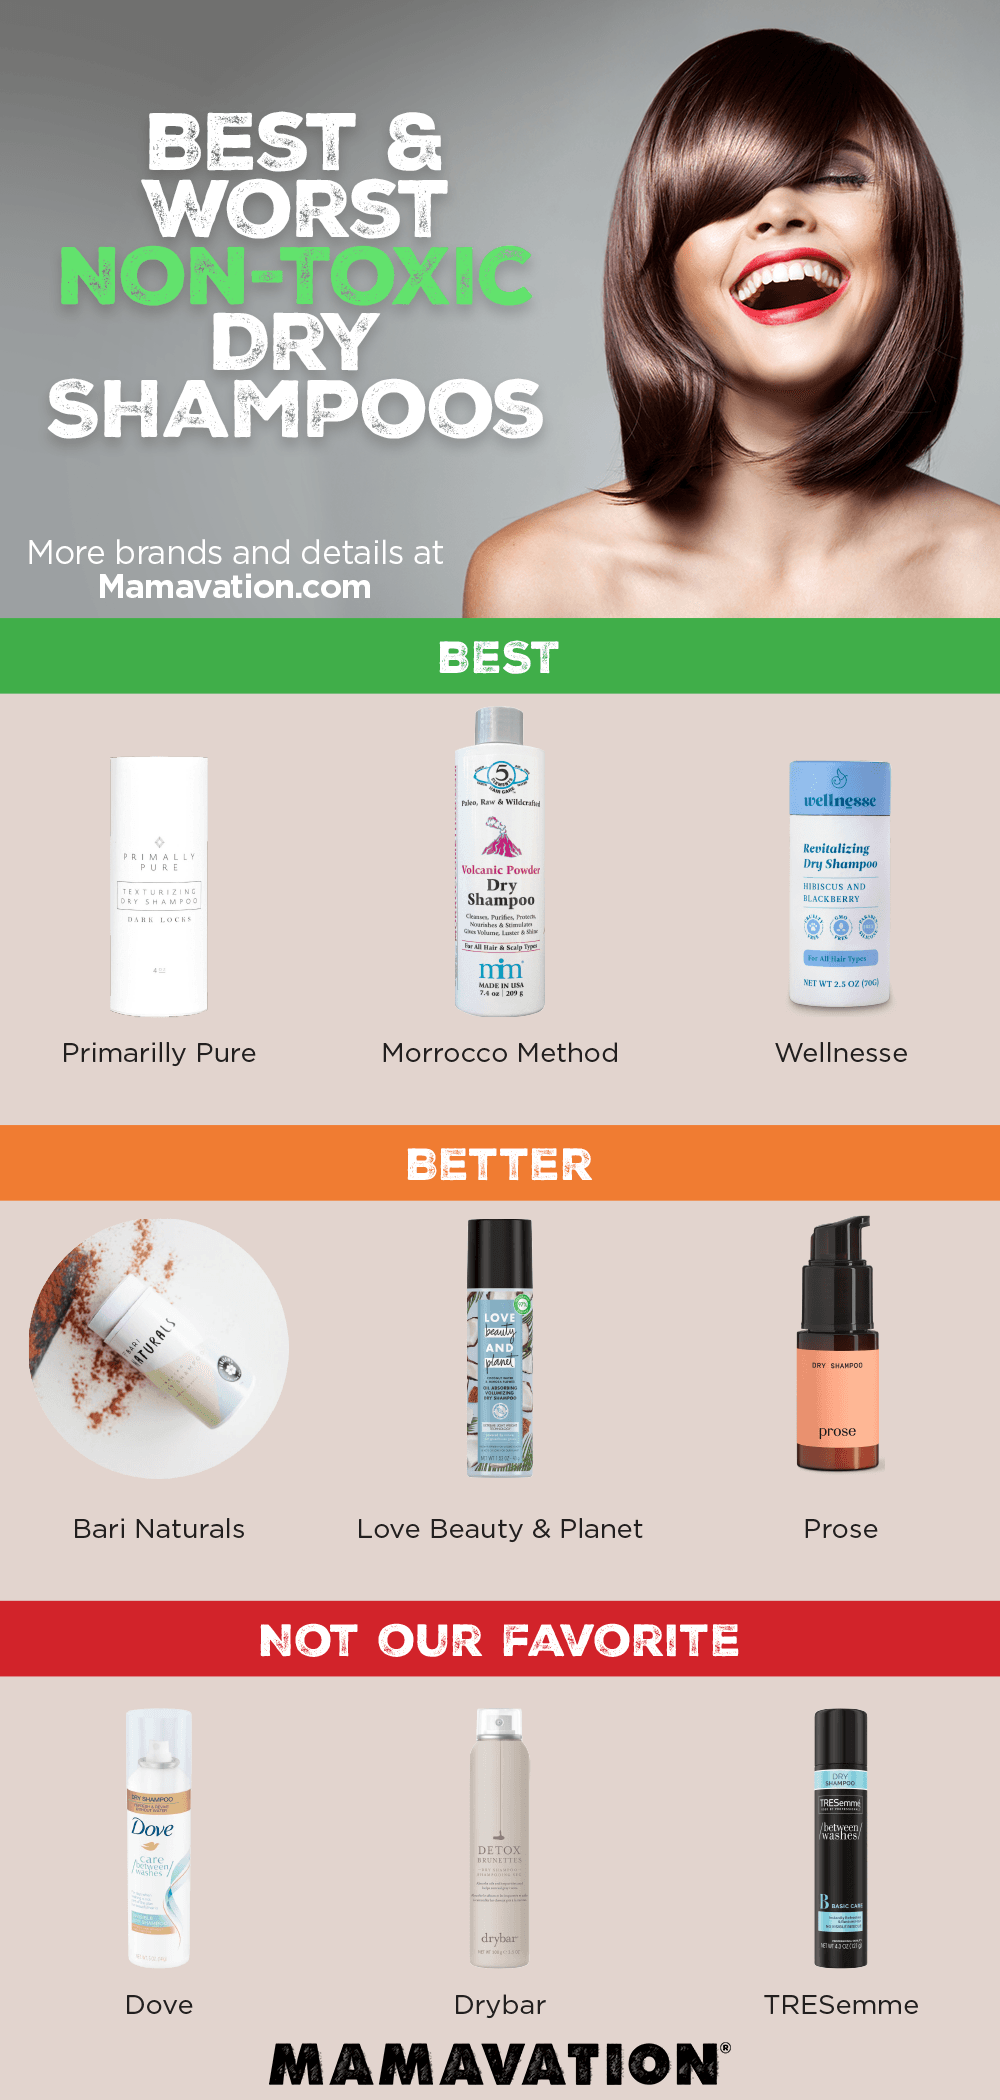 Best & Worst Non-Toxic Dry Shampoos 2021